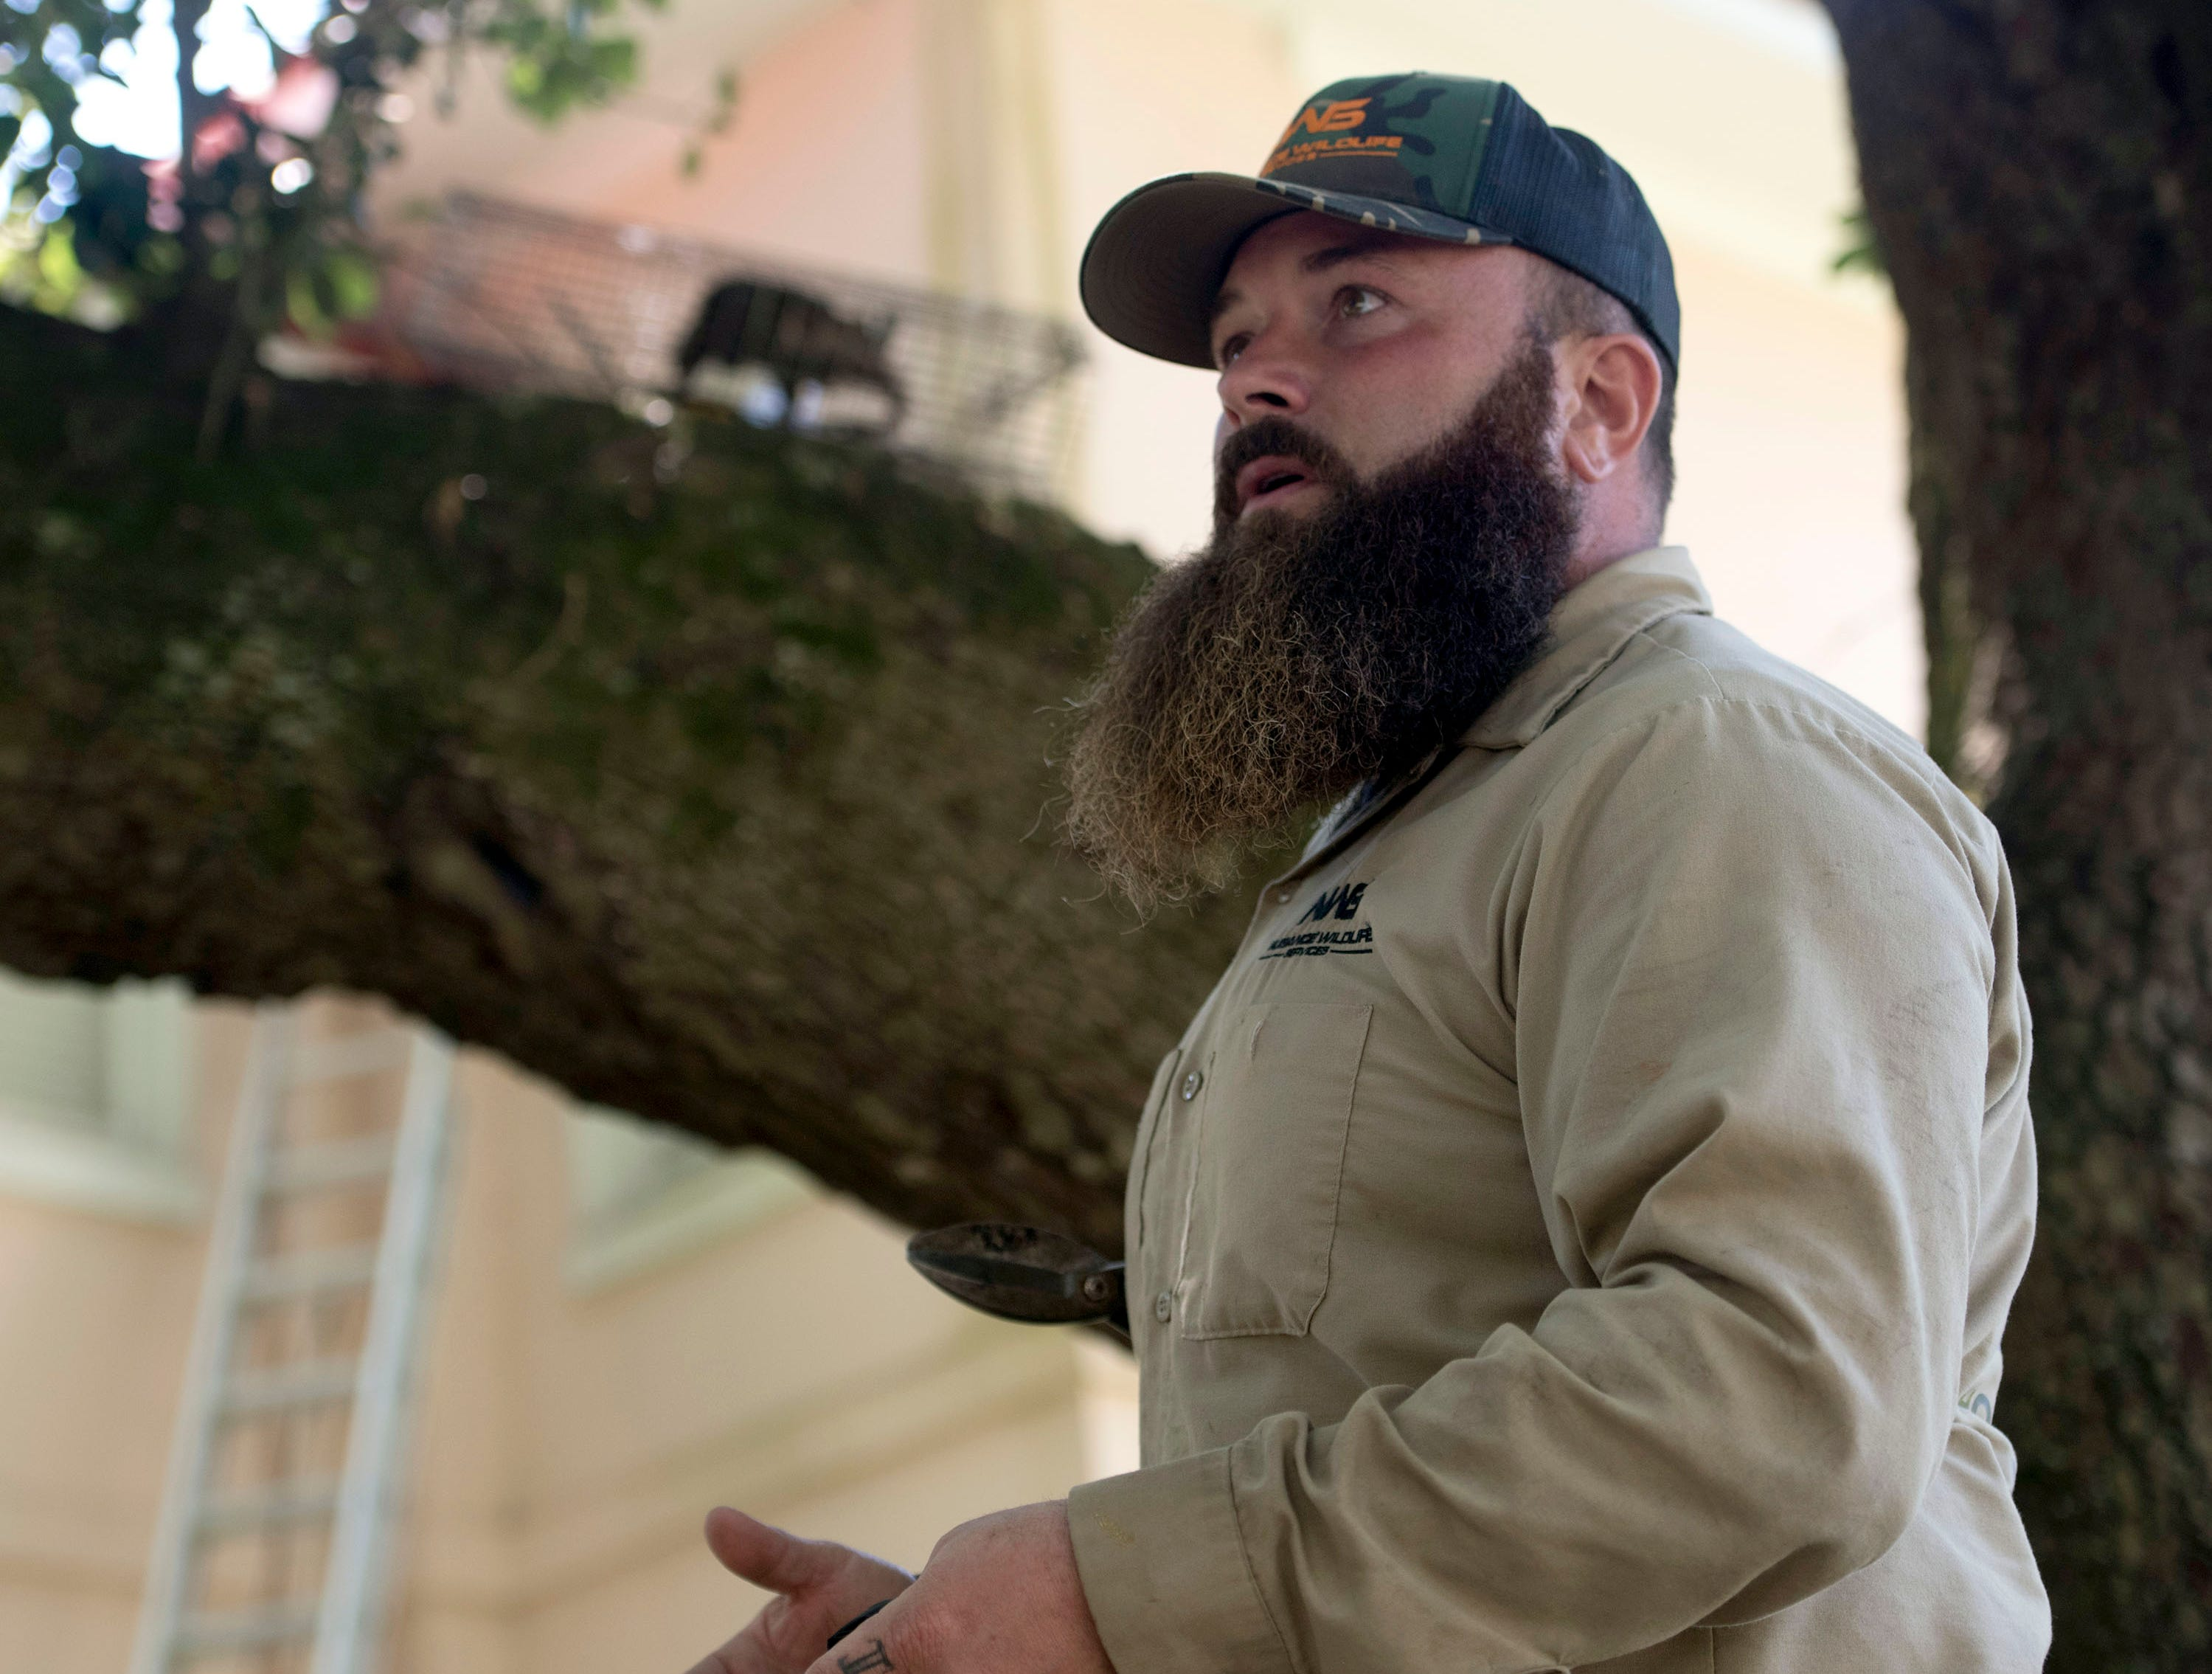 Dustin Niccum, the owner of Nuisance Wildlife Services, describes his Company's mission while on a service call in North Hill on Wednesday, May 15, 2019. Niccum, a Hurricane Michael transplant, launched his humane wildlife removal company in the Pensacola area on April 1.